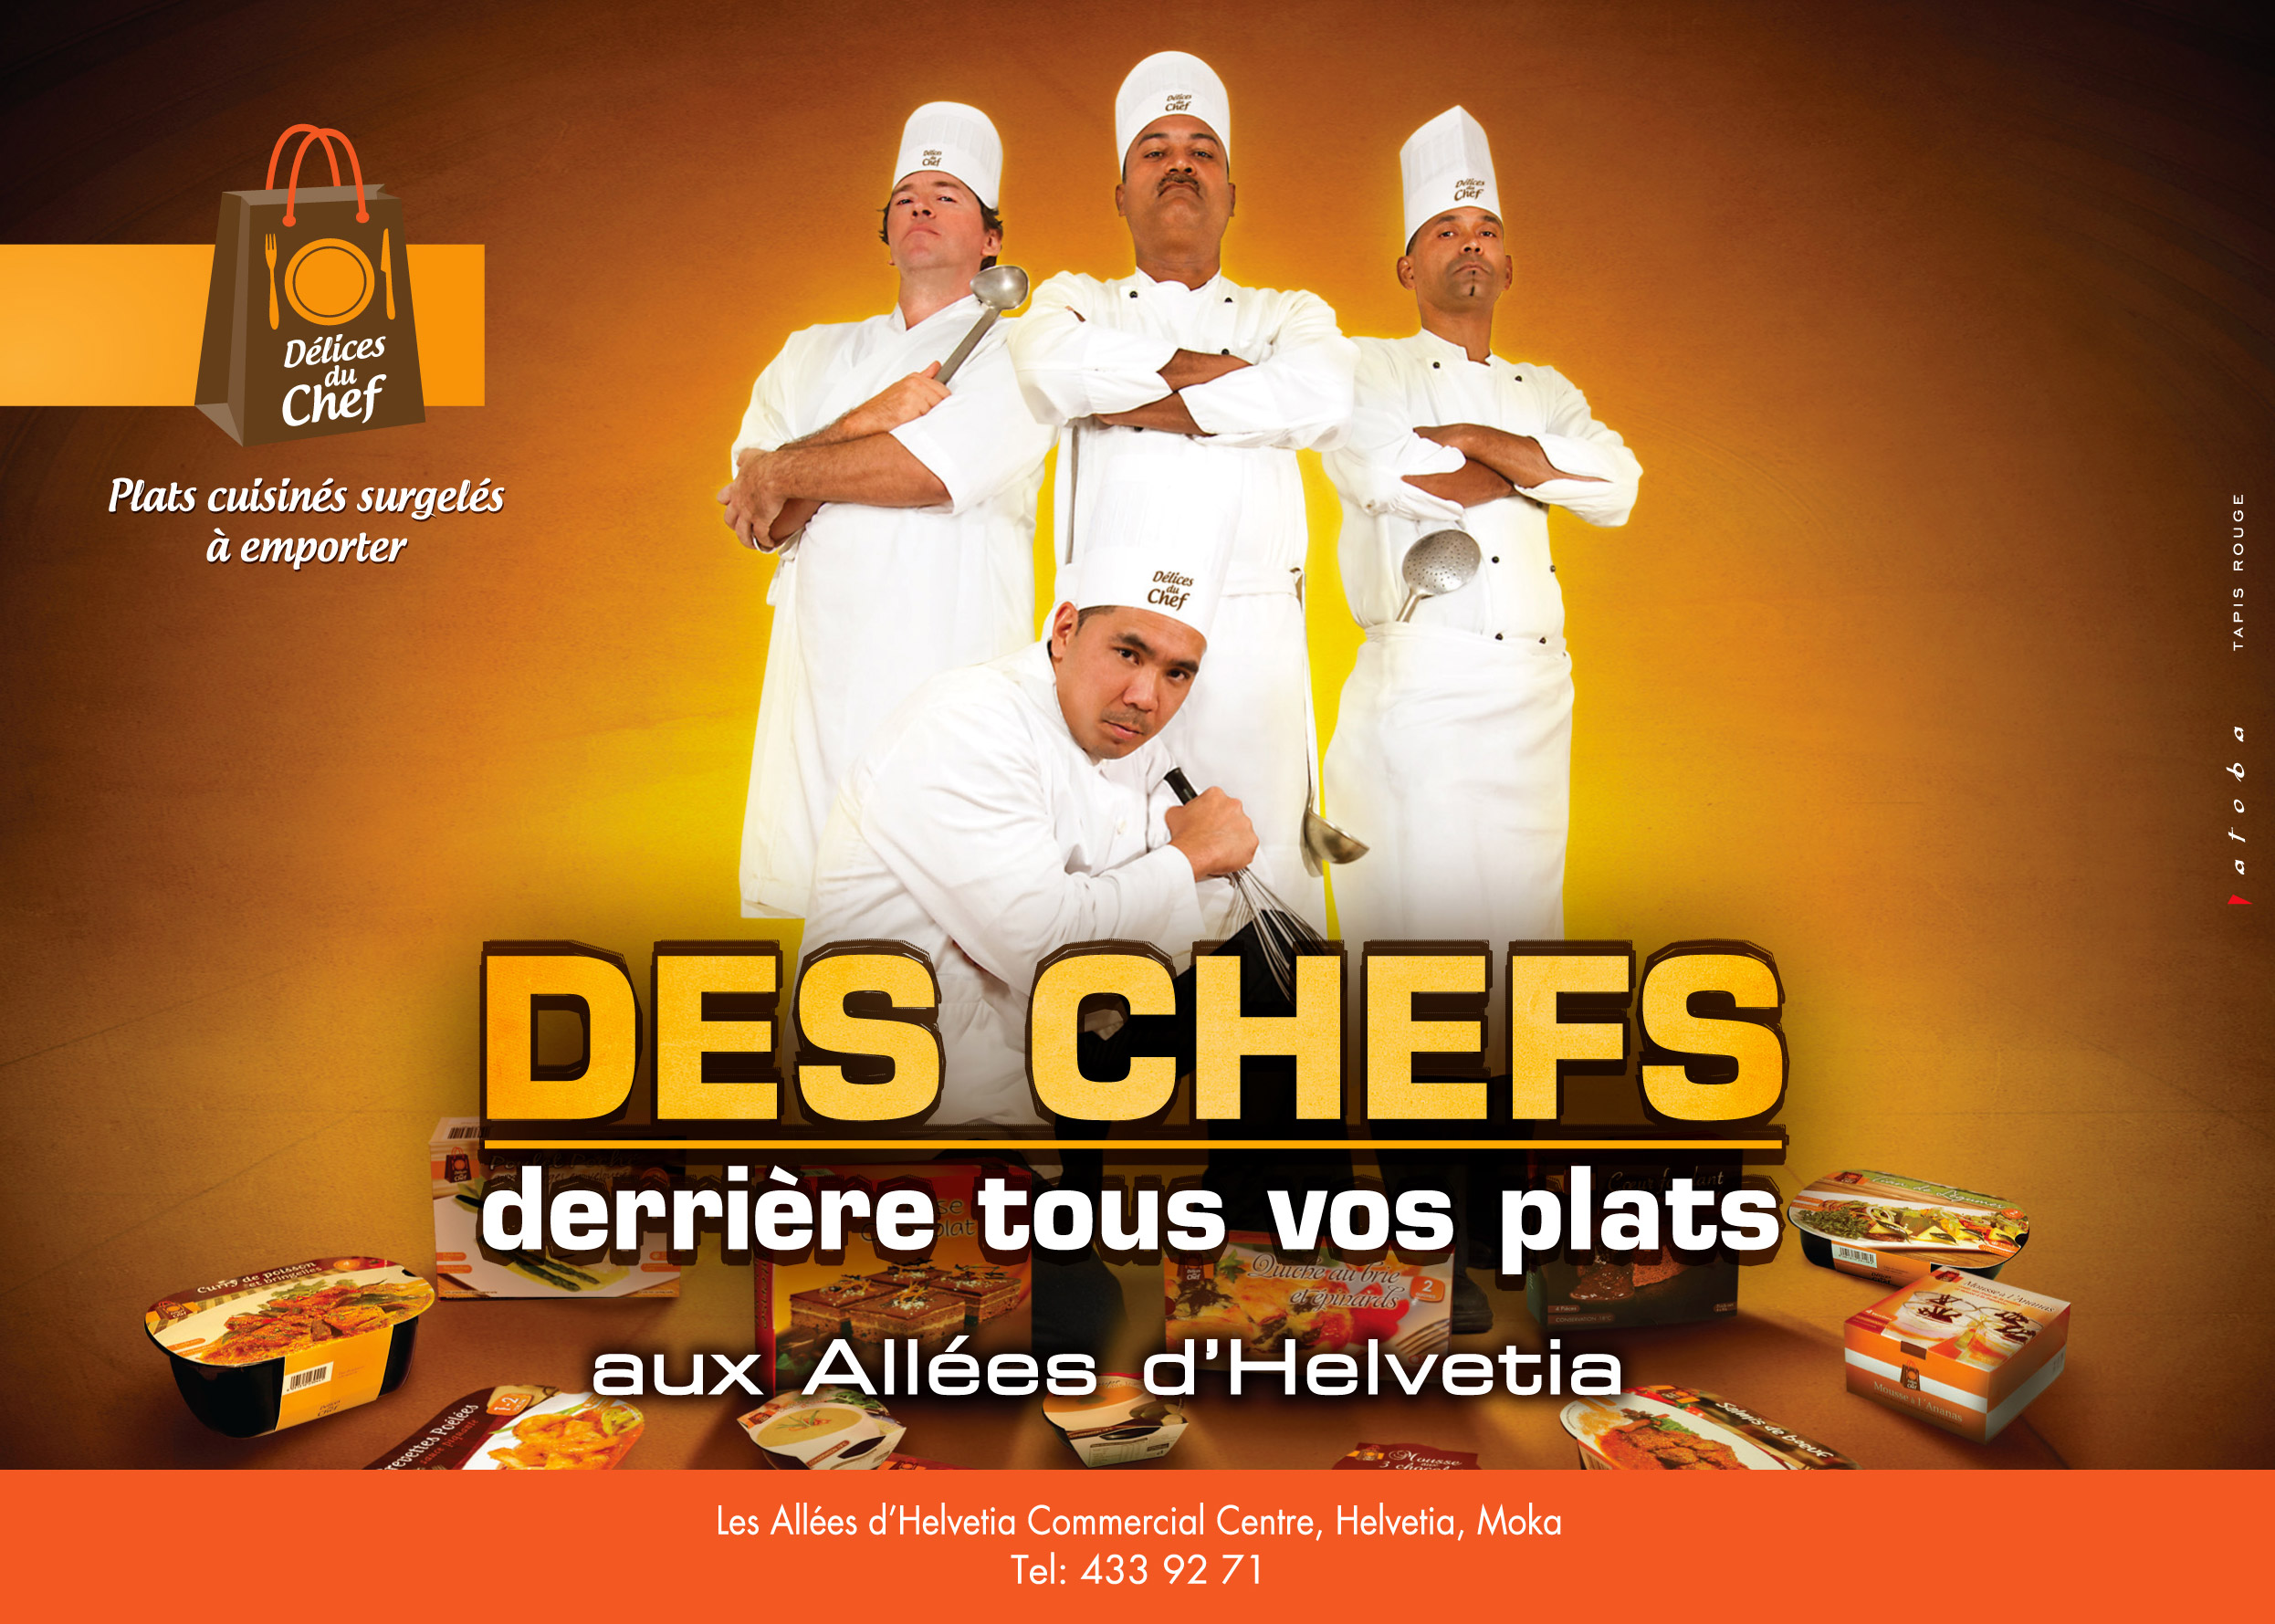 Delices du Chef